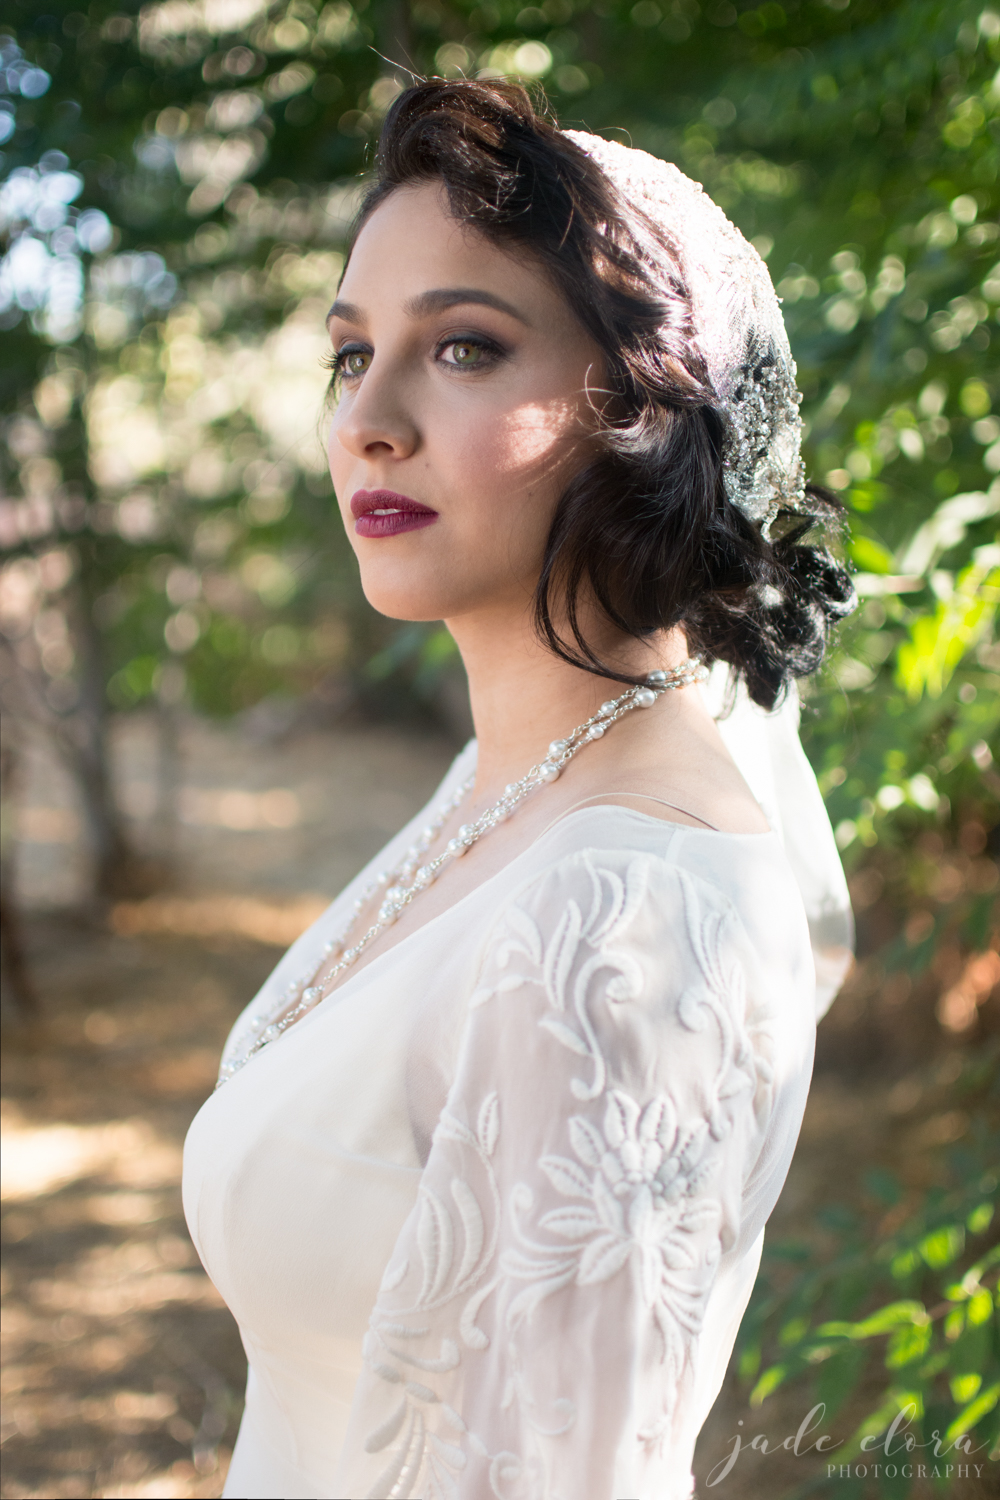 Glendale-Wedding-Photographer-Blog-Jade-Elora-2017-271.jpg